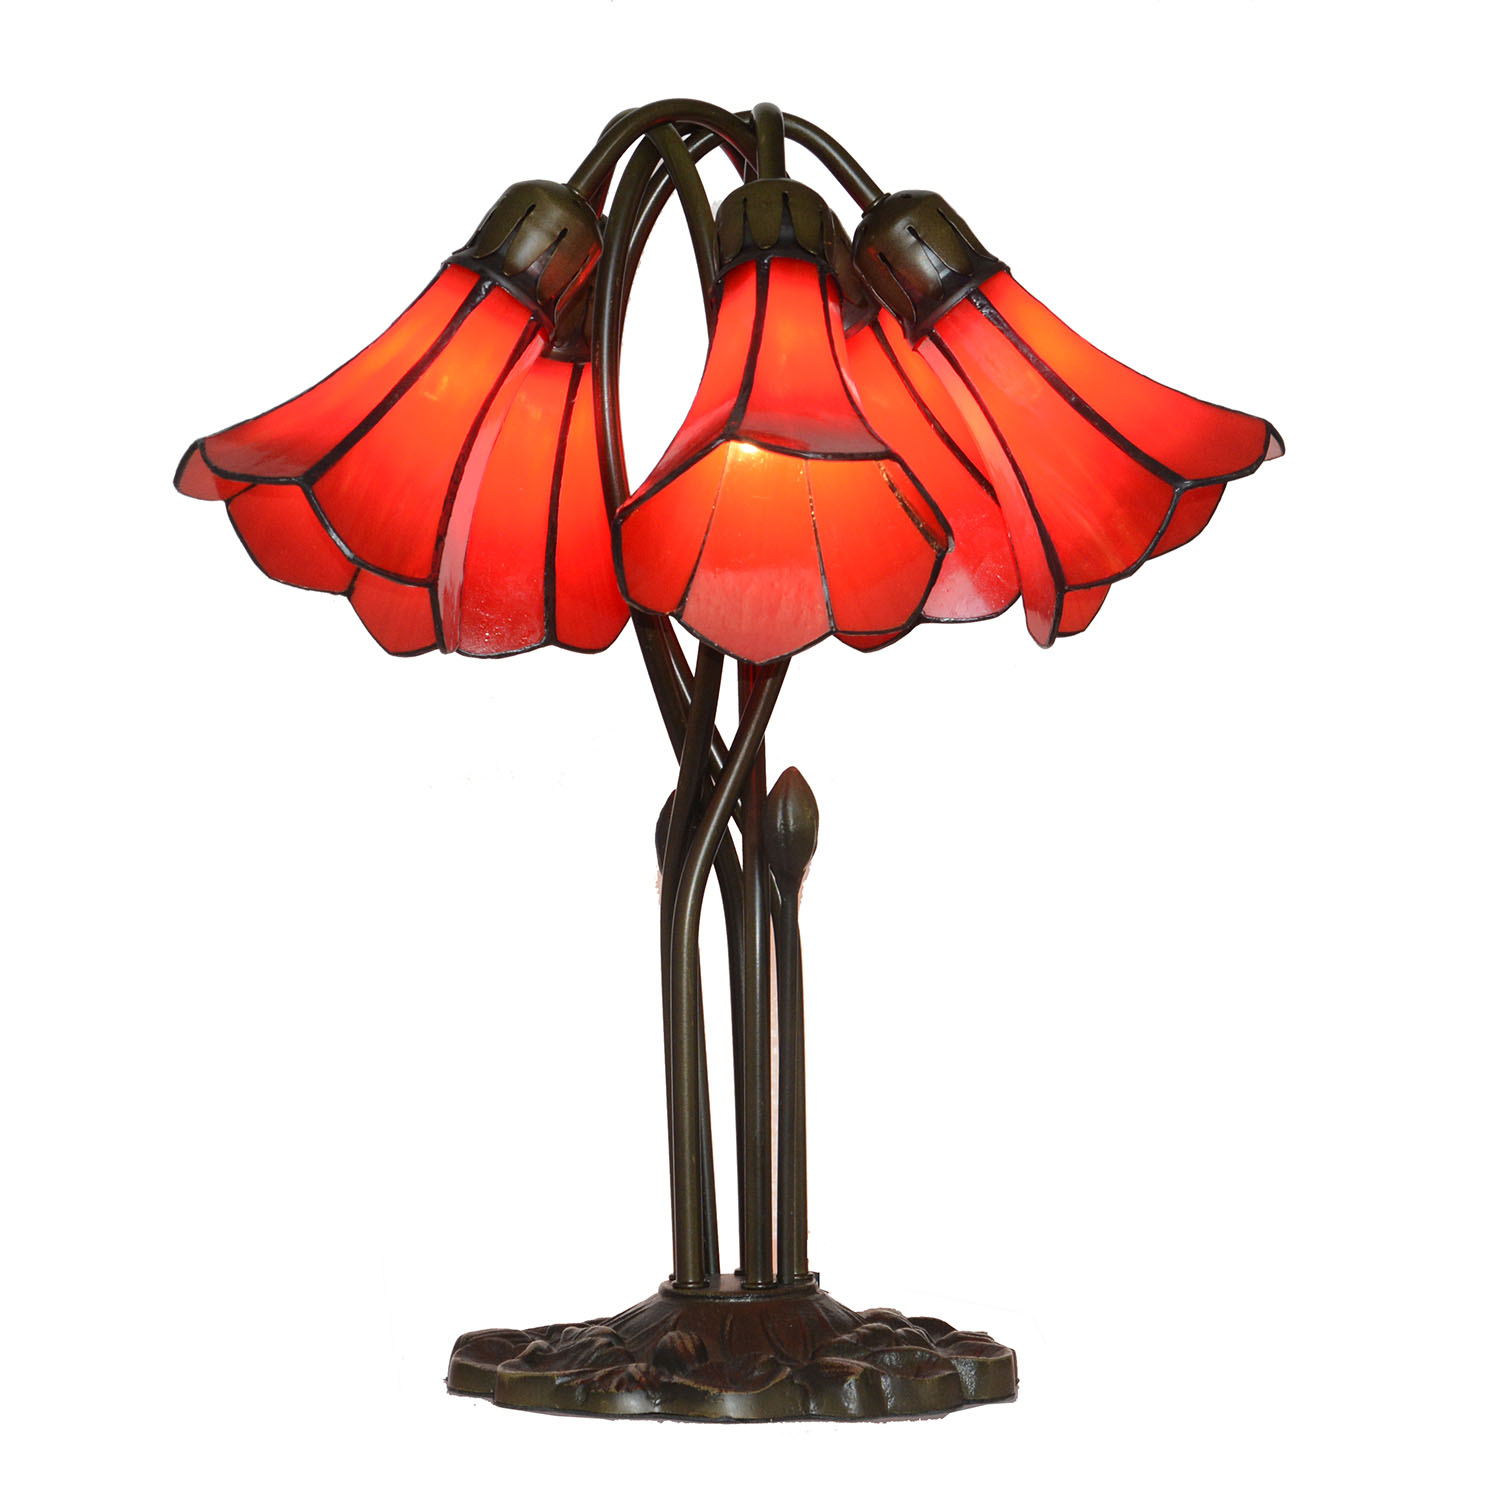 lily lamp 5rd -1